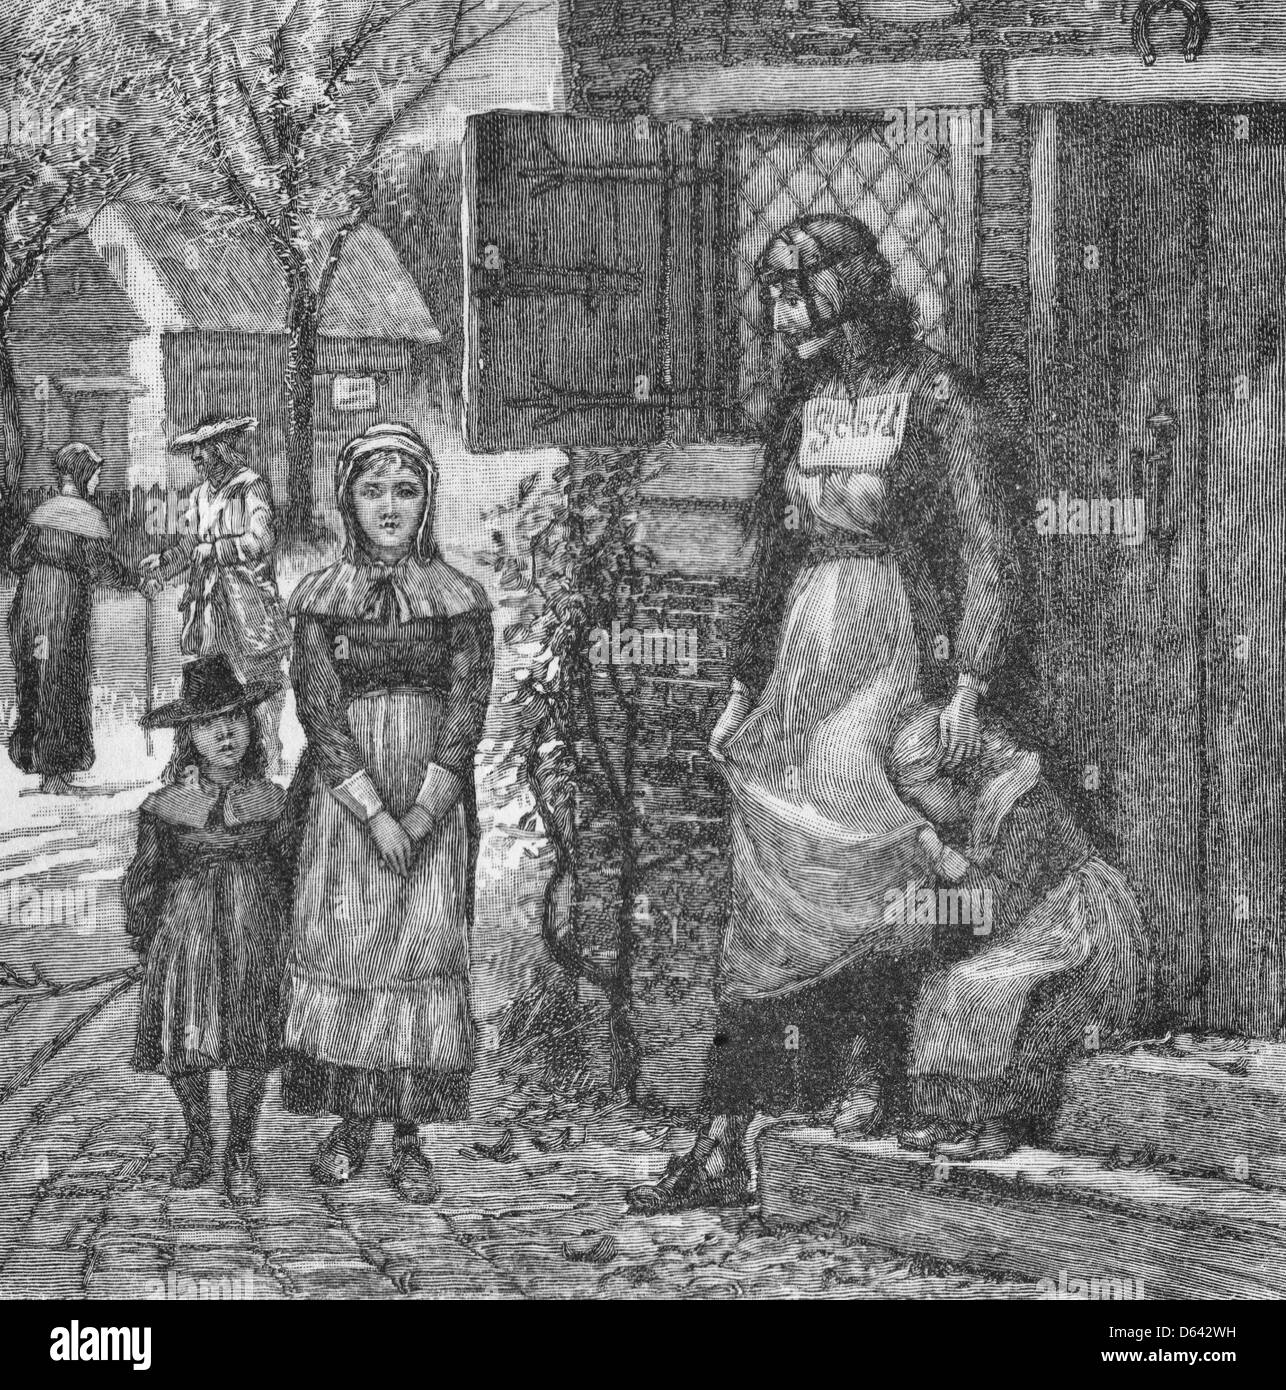 A Scold's Bridle - woman silenced with a bridle and standing on the street in Colonial America, circa 1700 - Stock Image